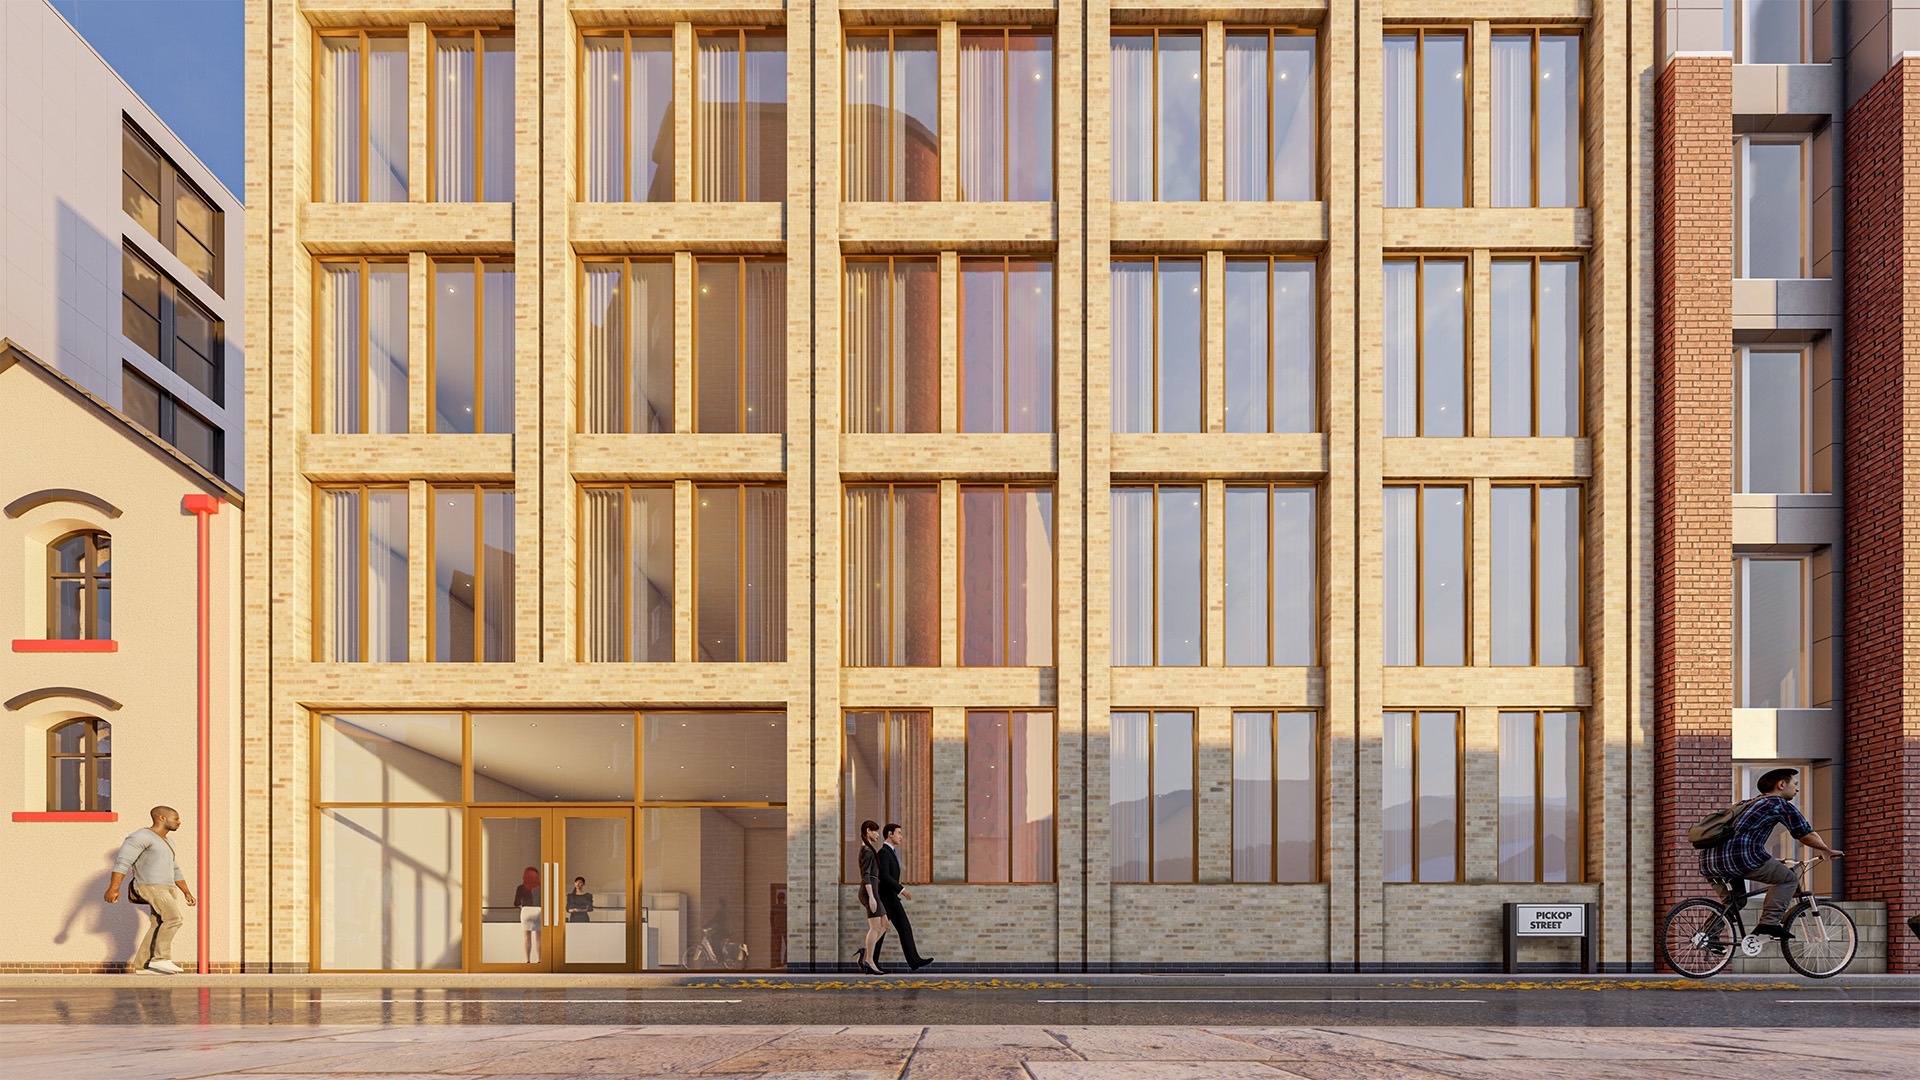 £5m Vauxhall development secures planning in latest success for Studio RBA